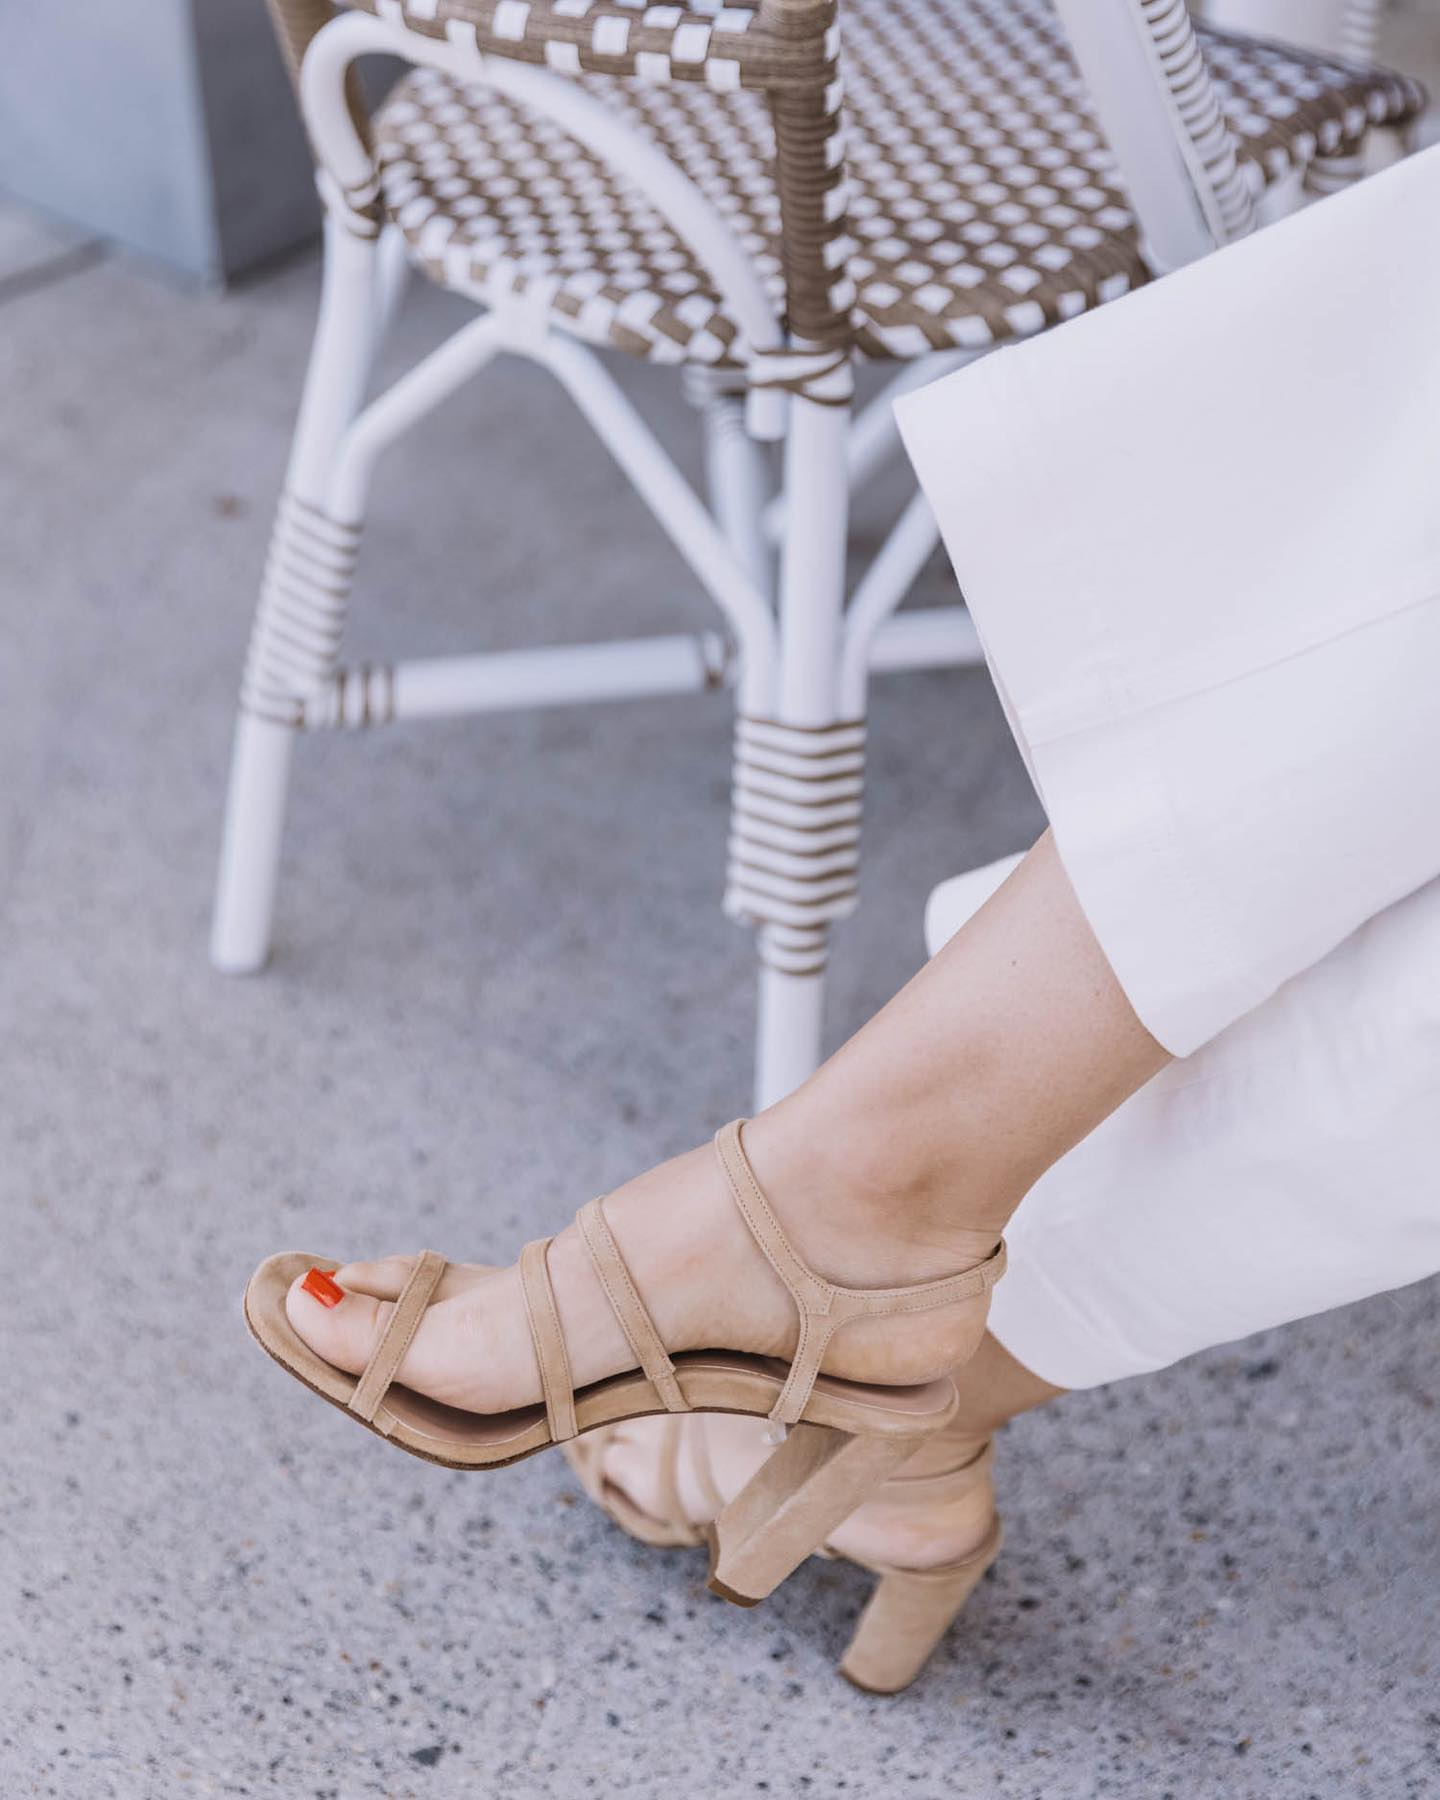 This style is such a great neutral and goes with so much. Love the strappy suede and slightly chunky heel.